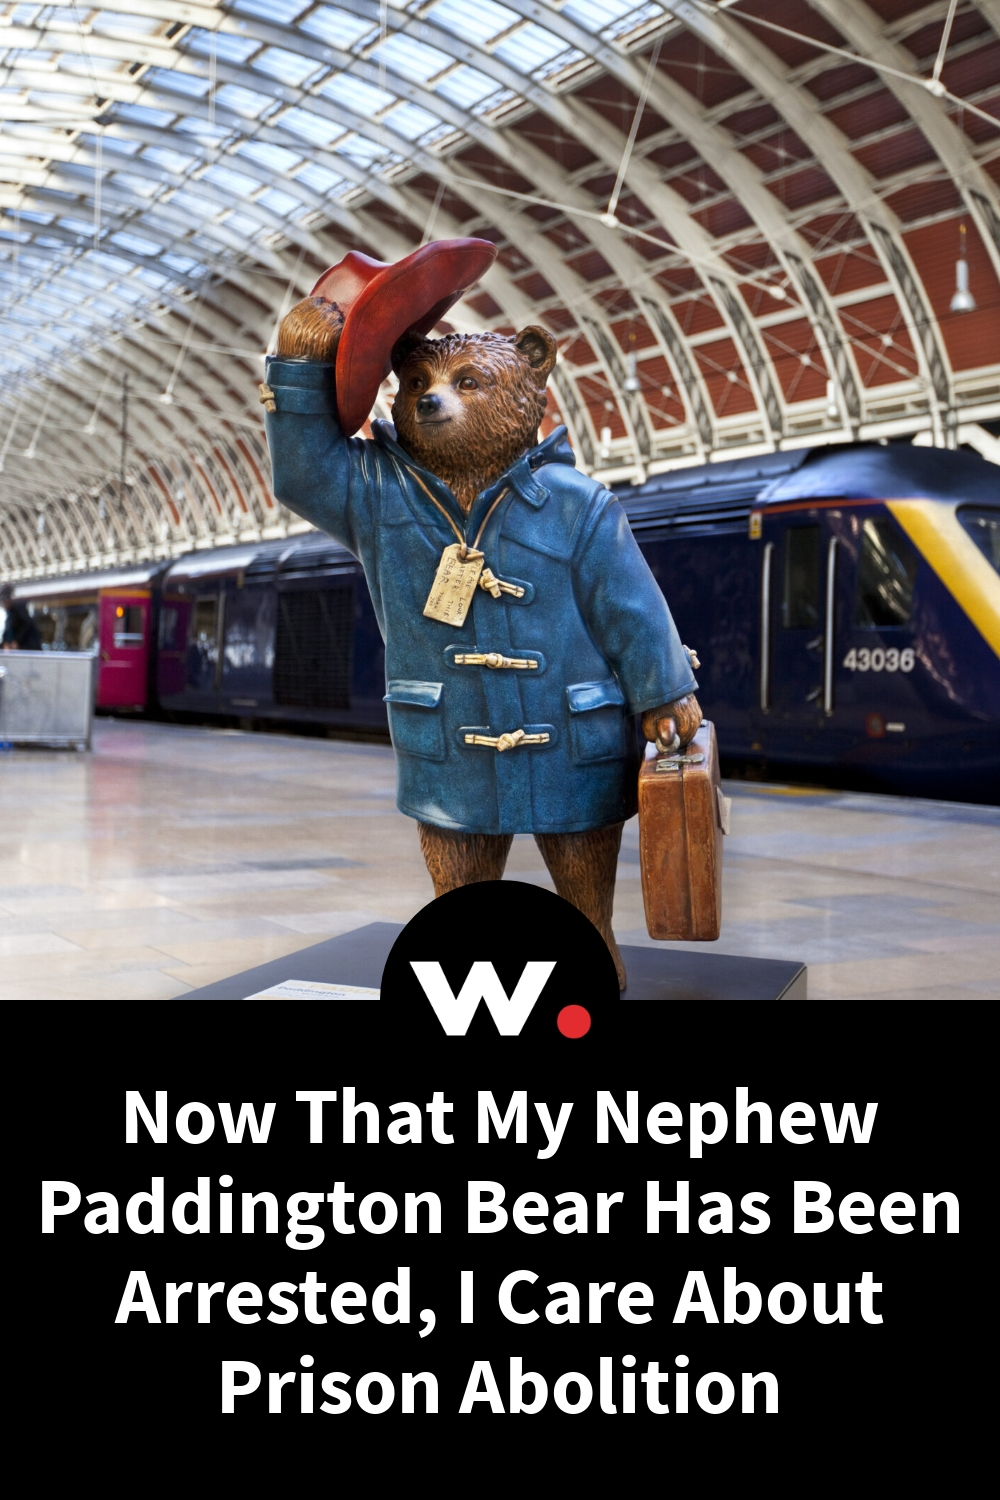 Now That My Nephew Paddington Bear Has Been Arrested, I Care About Prison Abolition